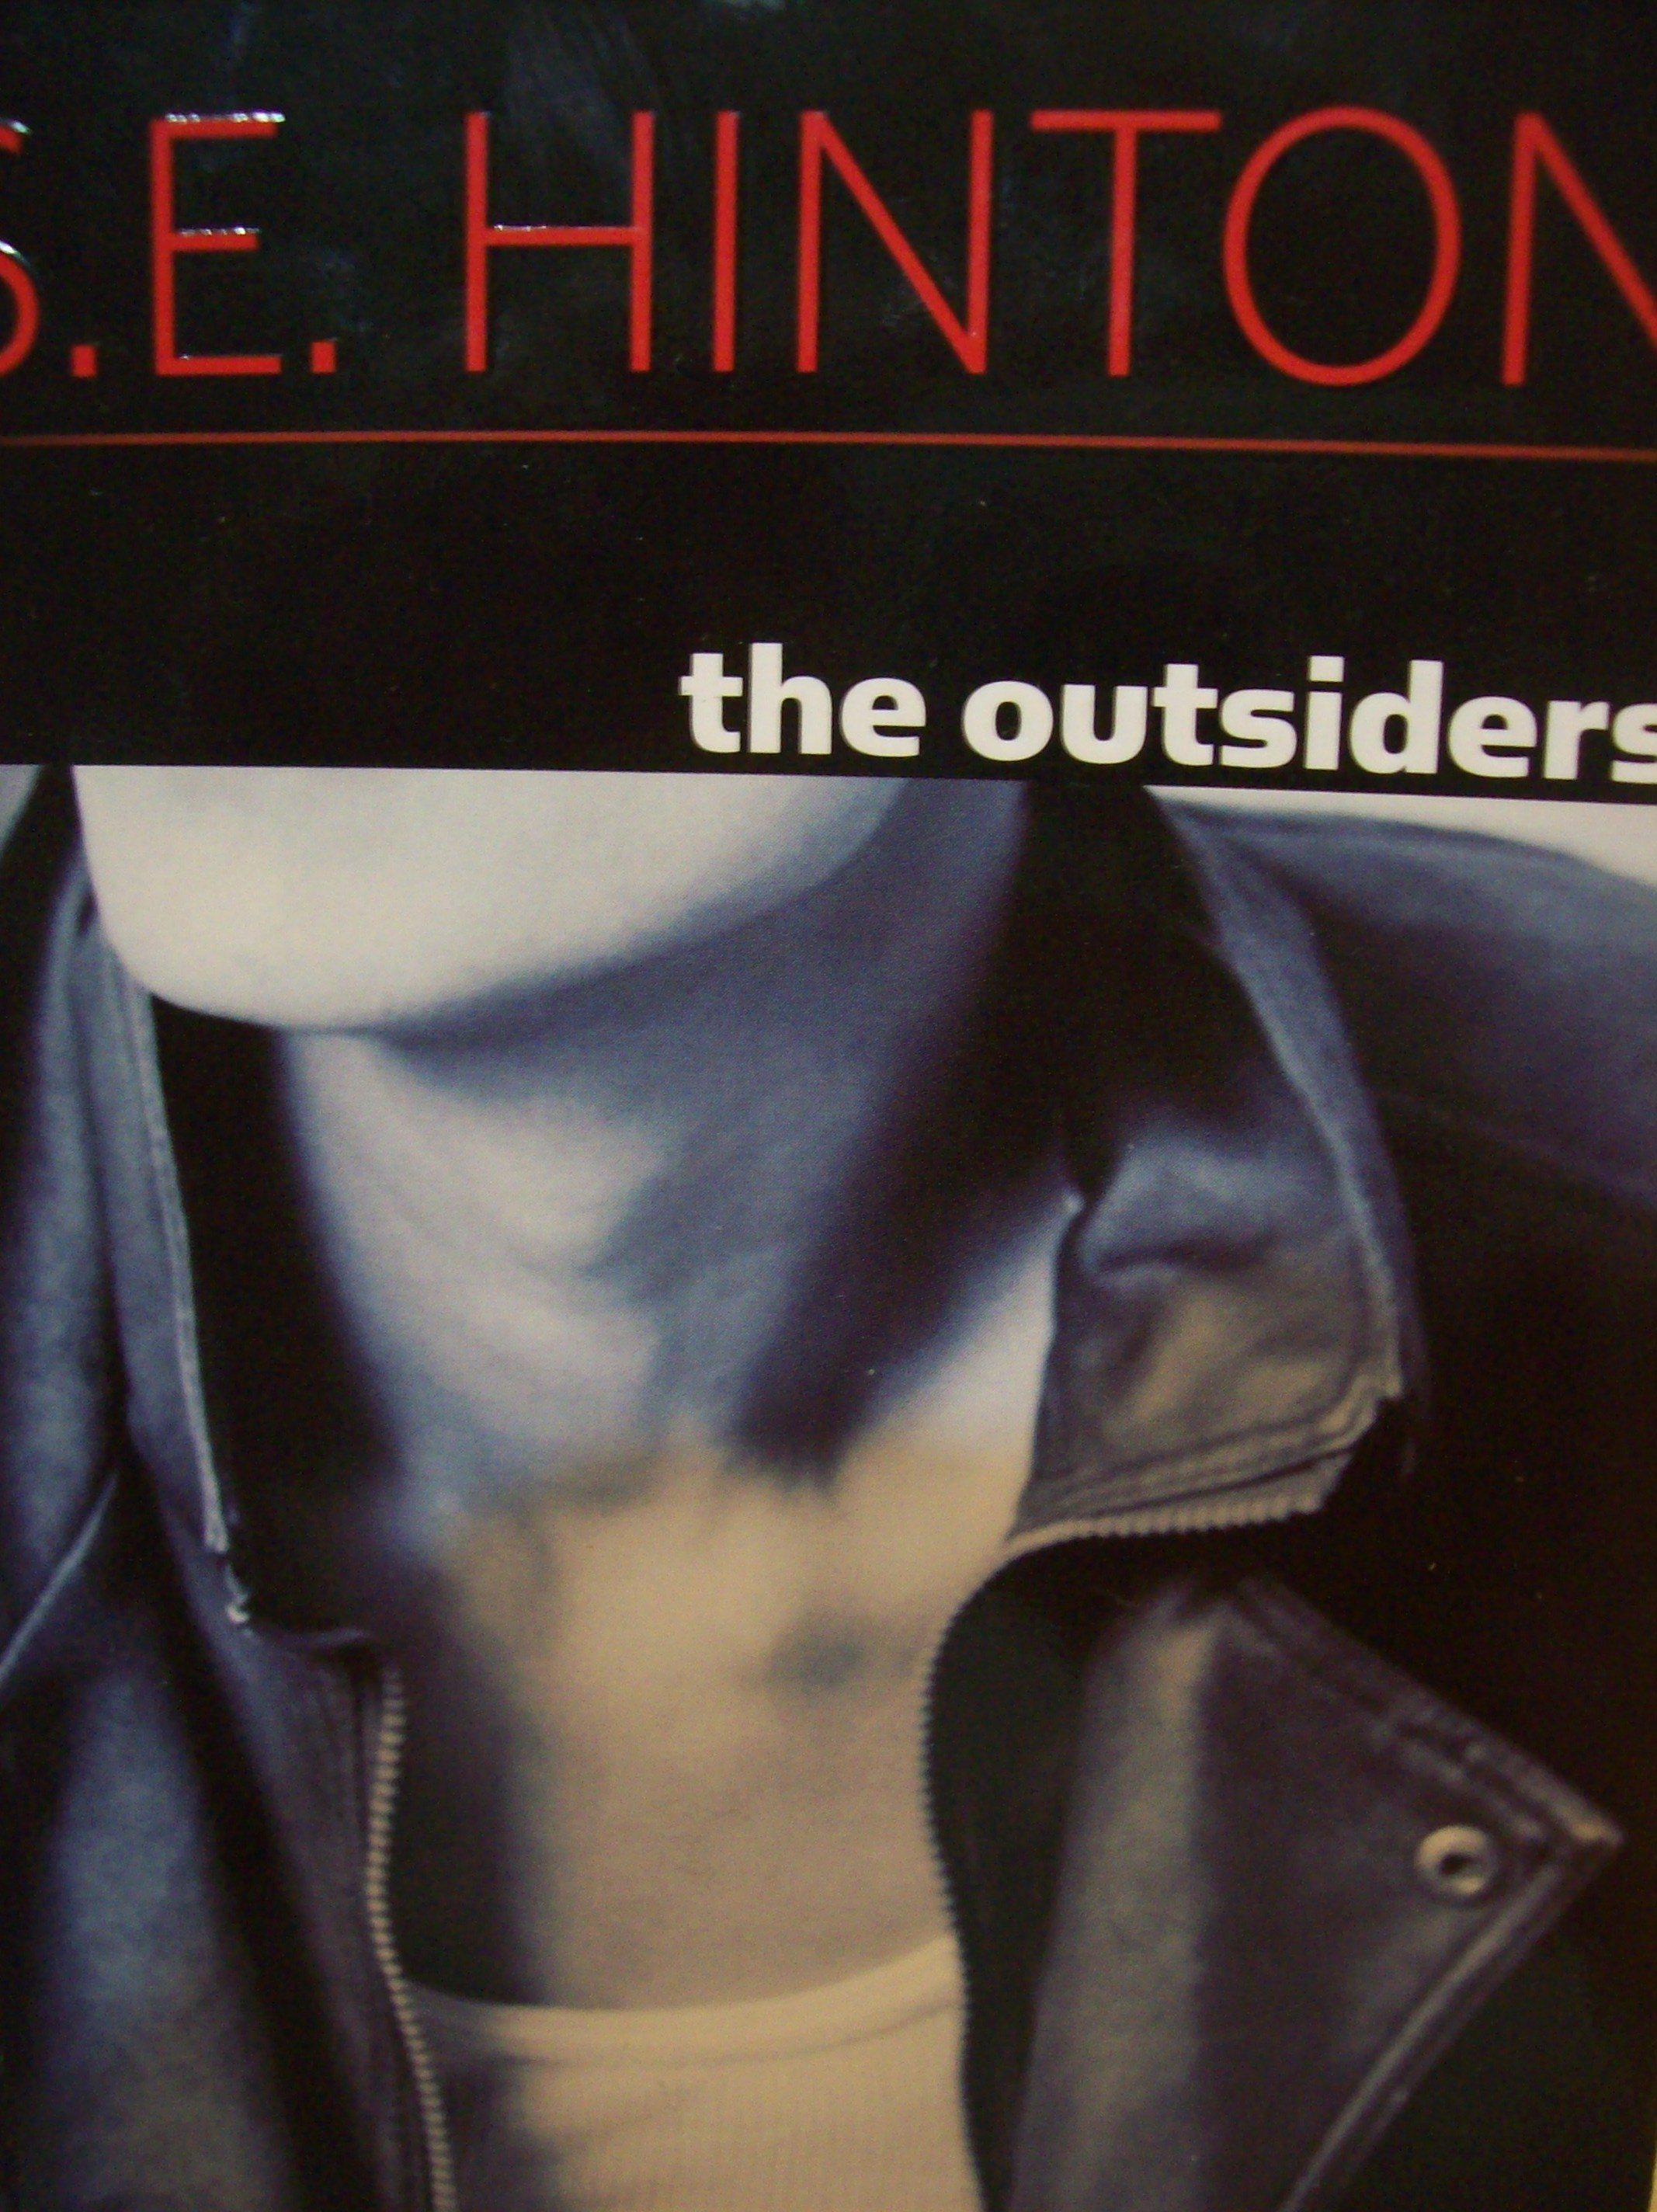 Best Read Ever The Outsiders By S E Hinton The Best Ya Novel Ever